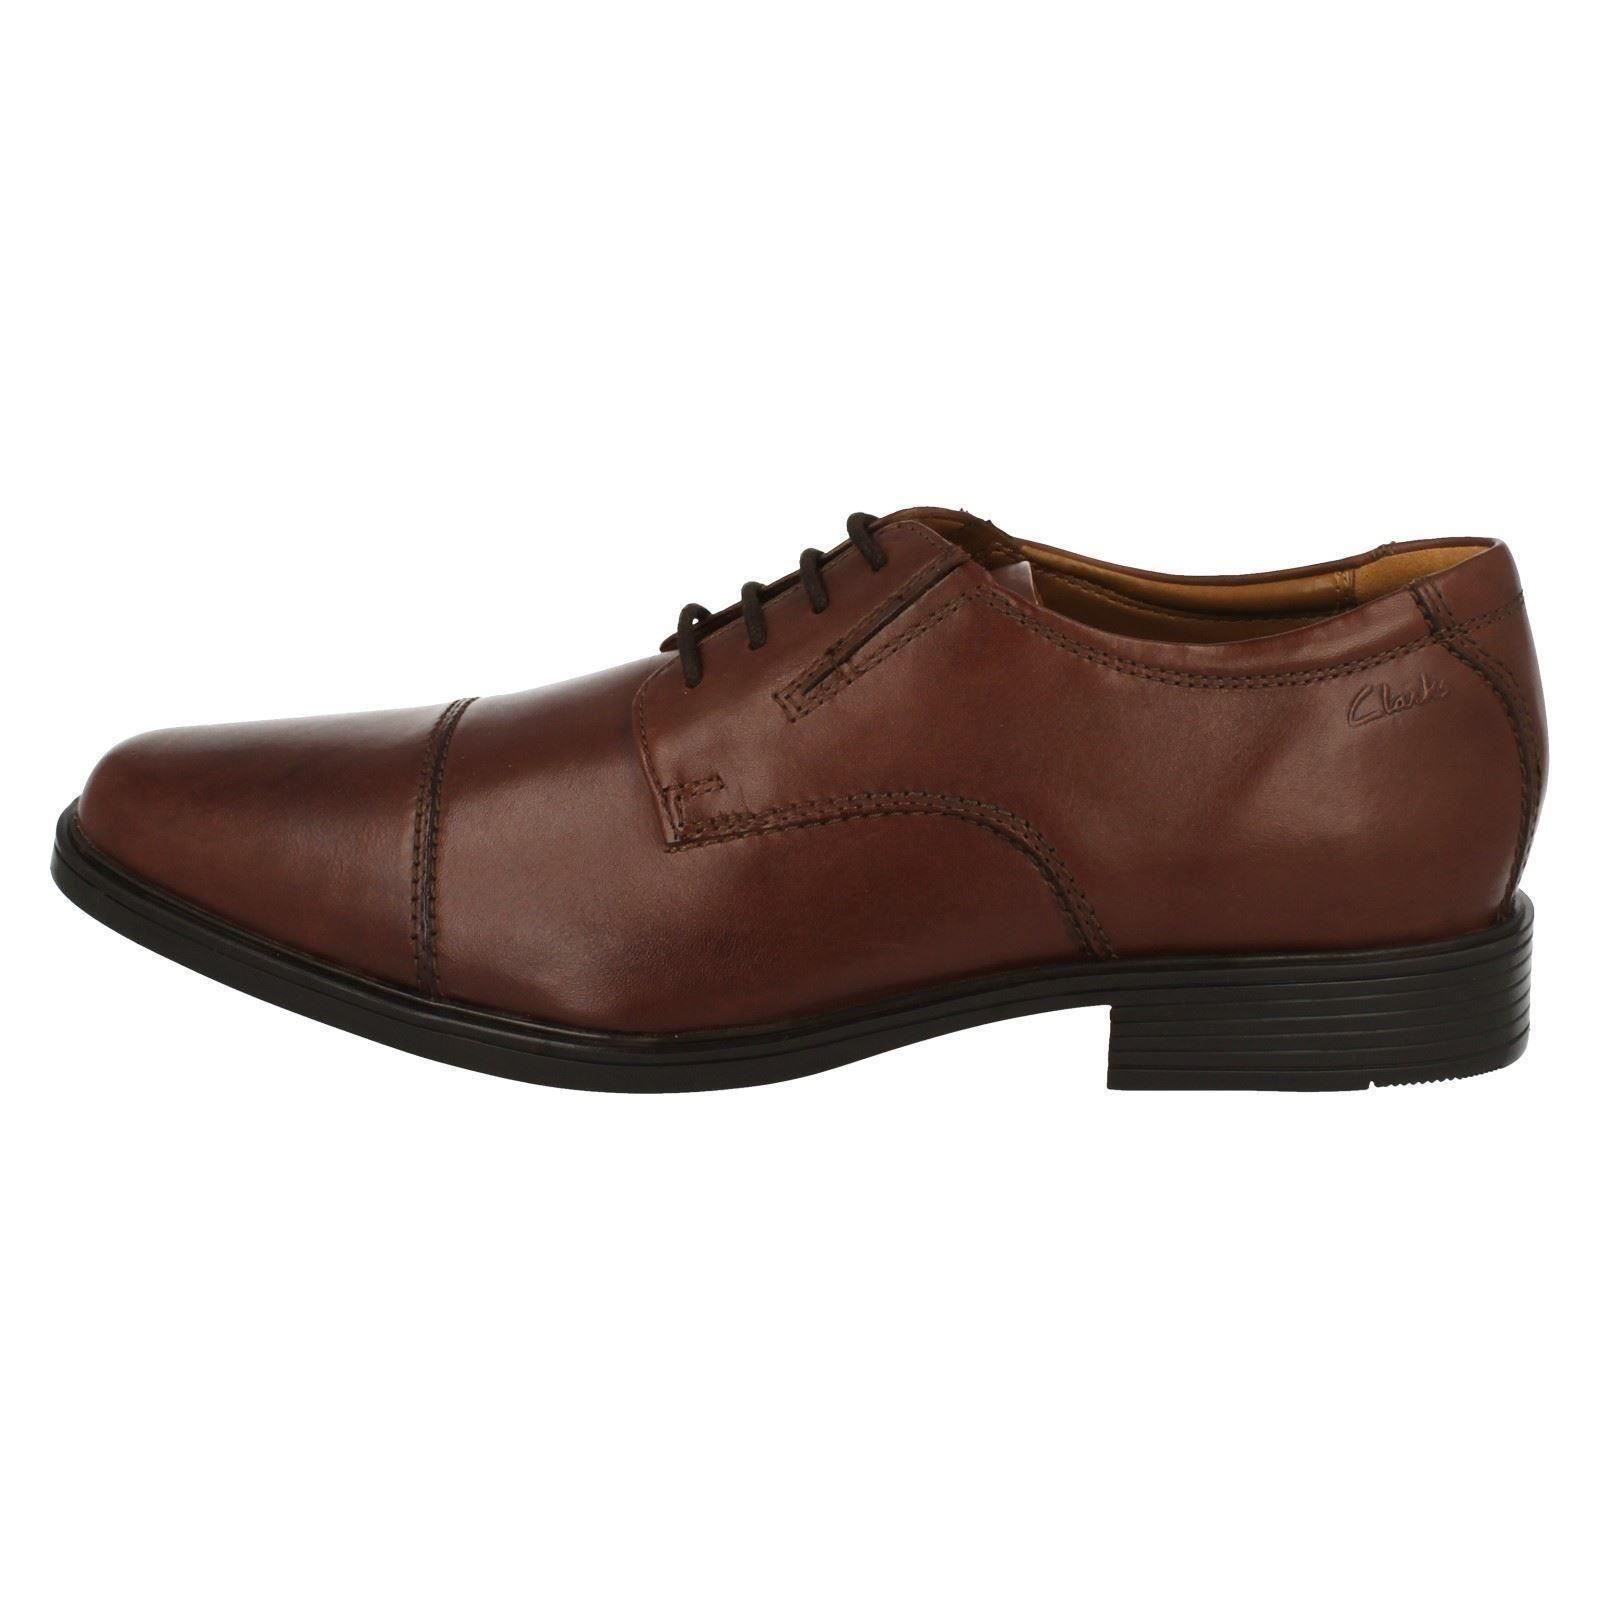 Mens-Clarks-Formal-Lace-Up-Shoes-Tilden-Cap thumbnail 16